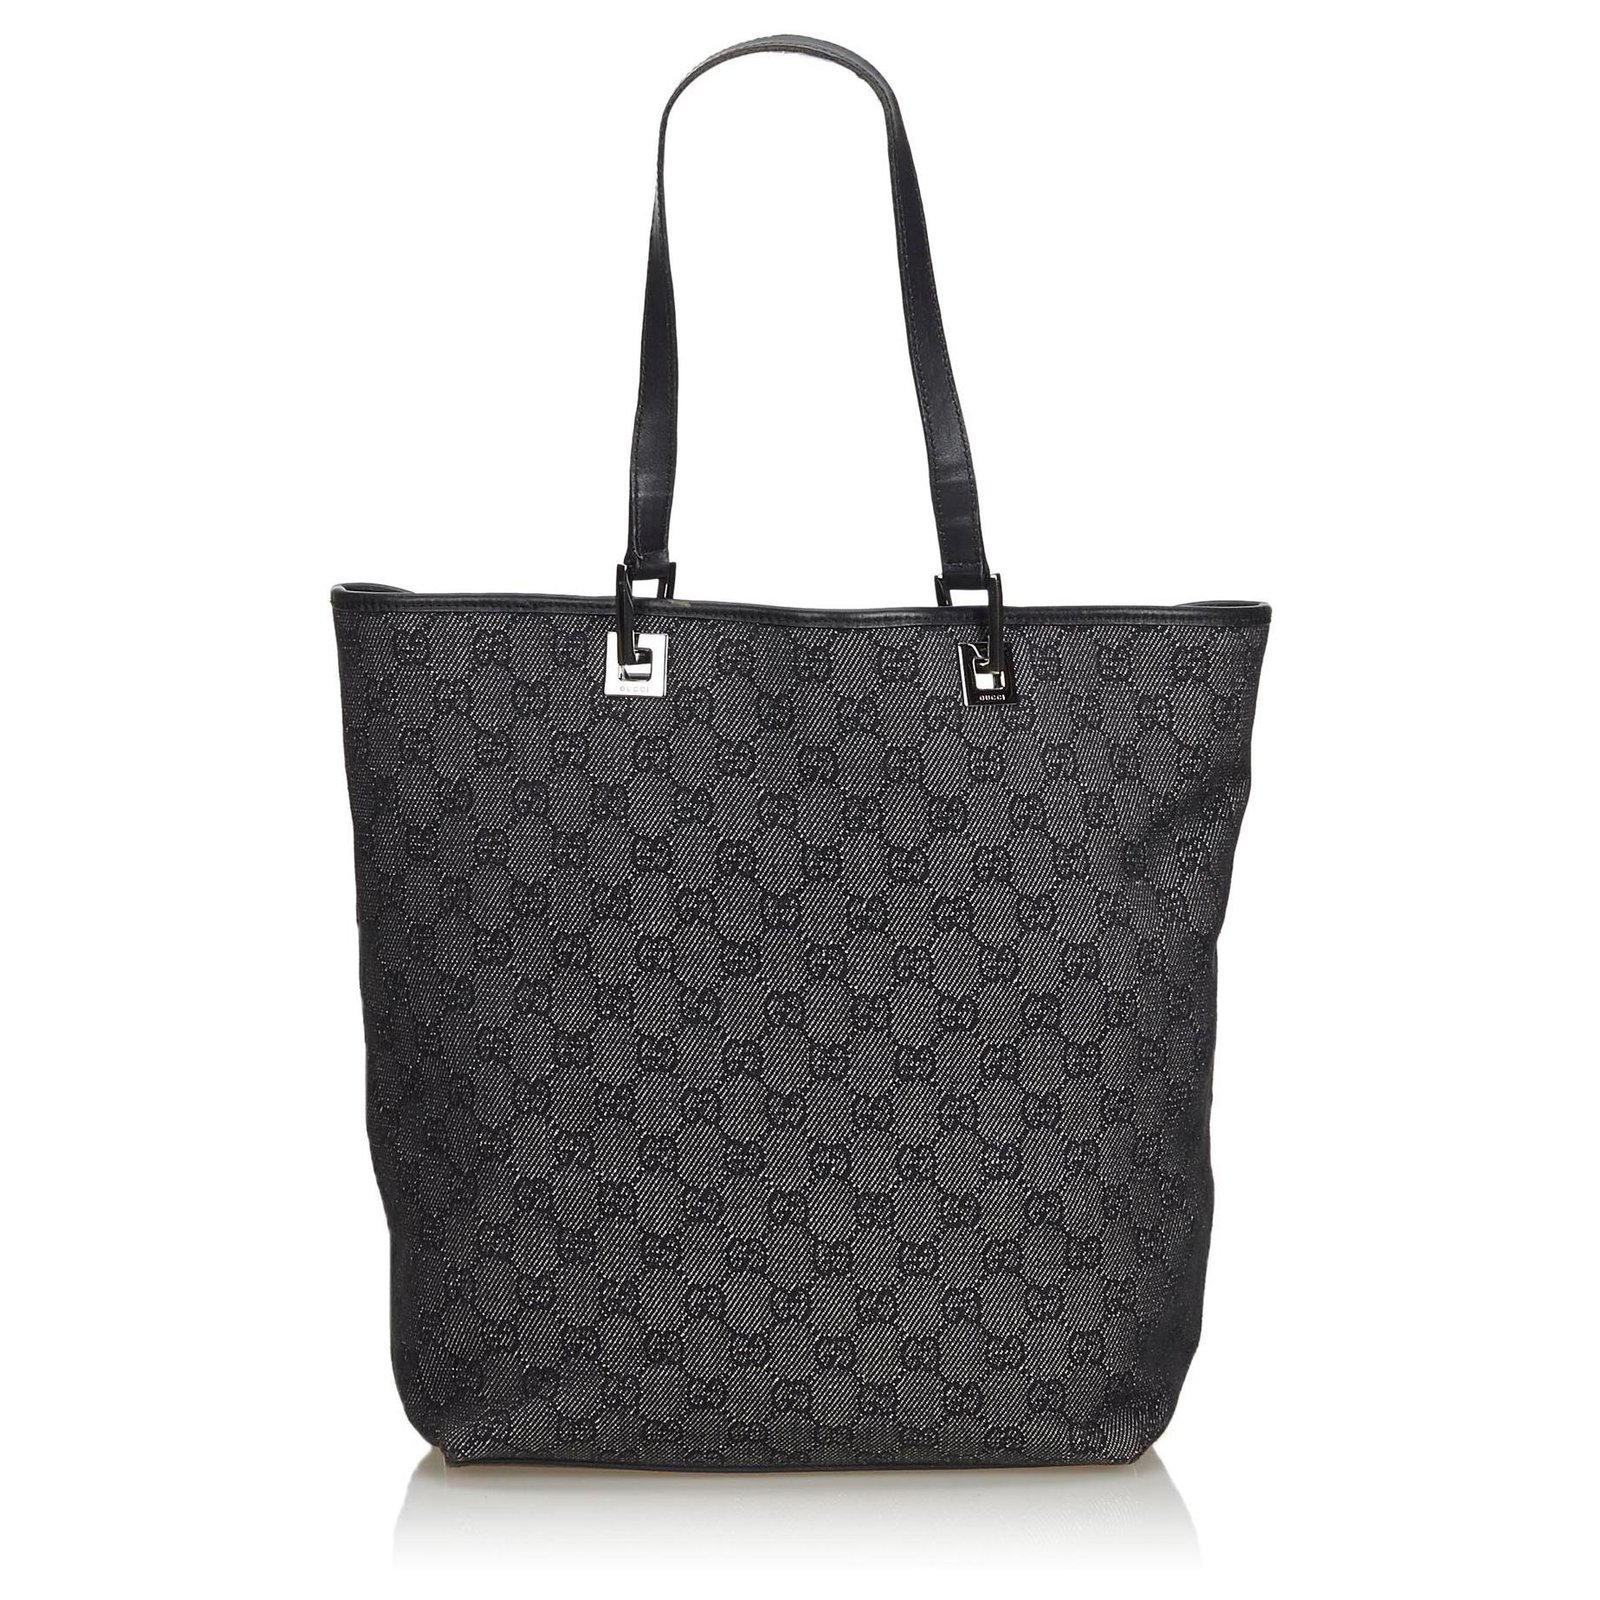 1d13891bd Gucci Gucci Gray GG Jacquard Tote Bag Totes Leather,Other,Cloth Black,Other